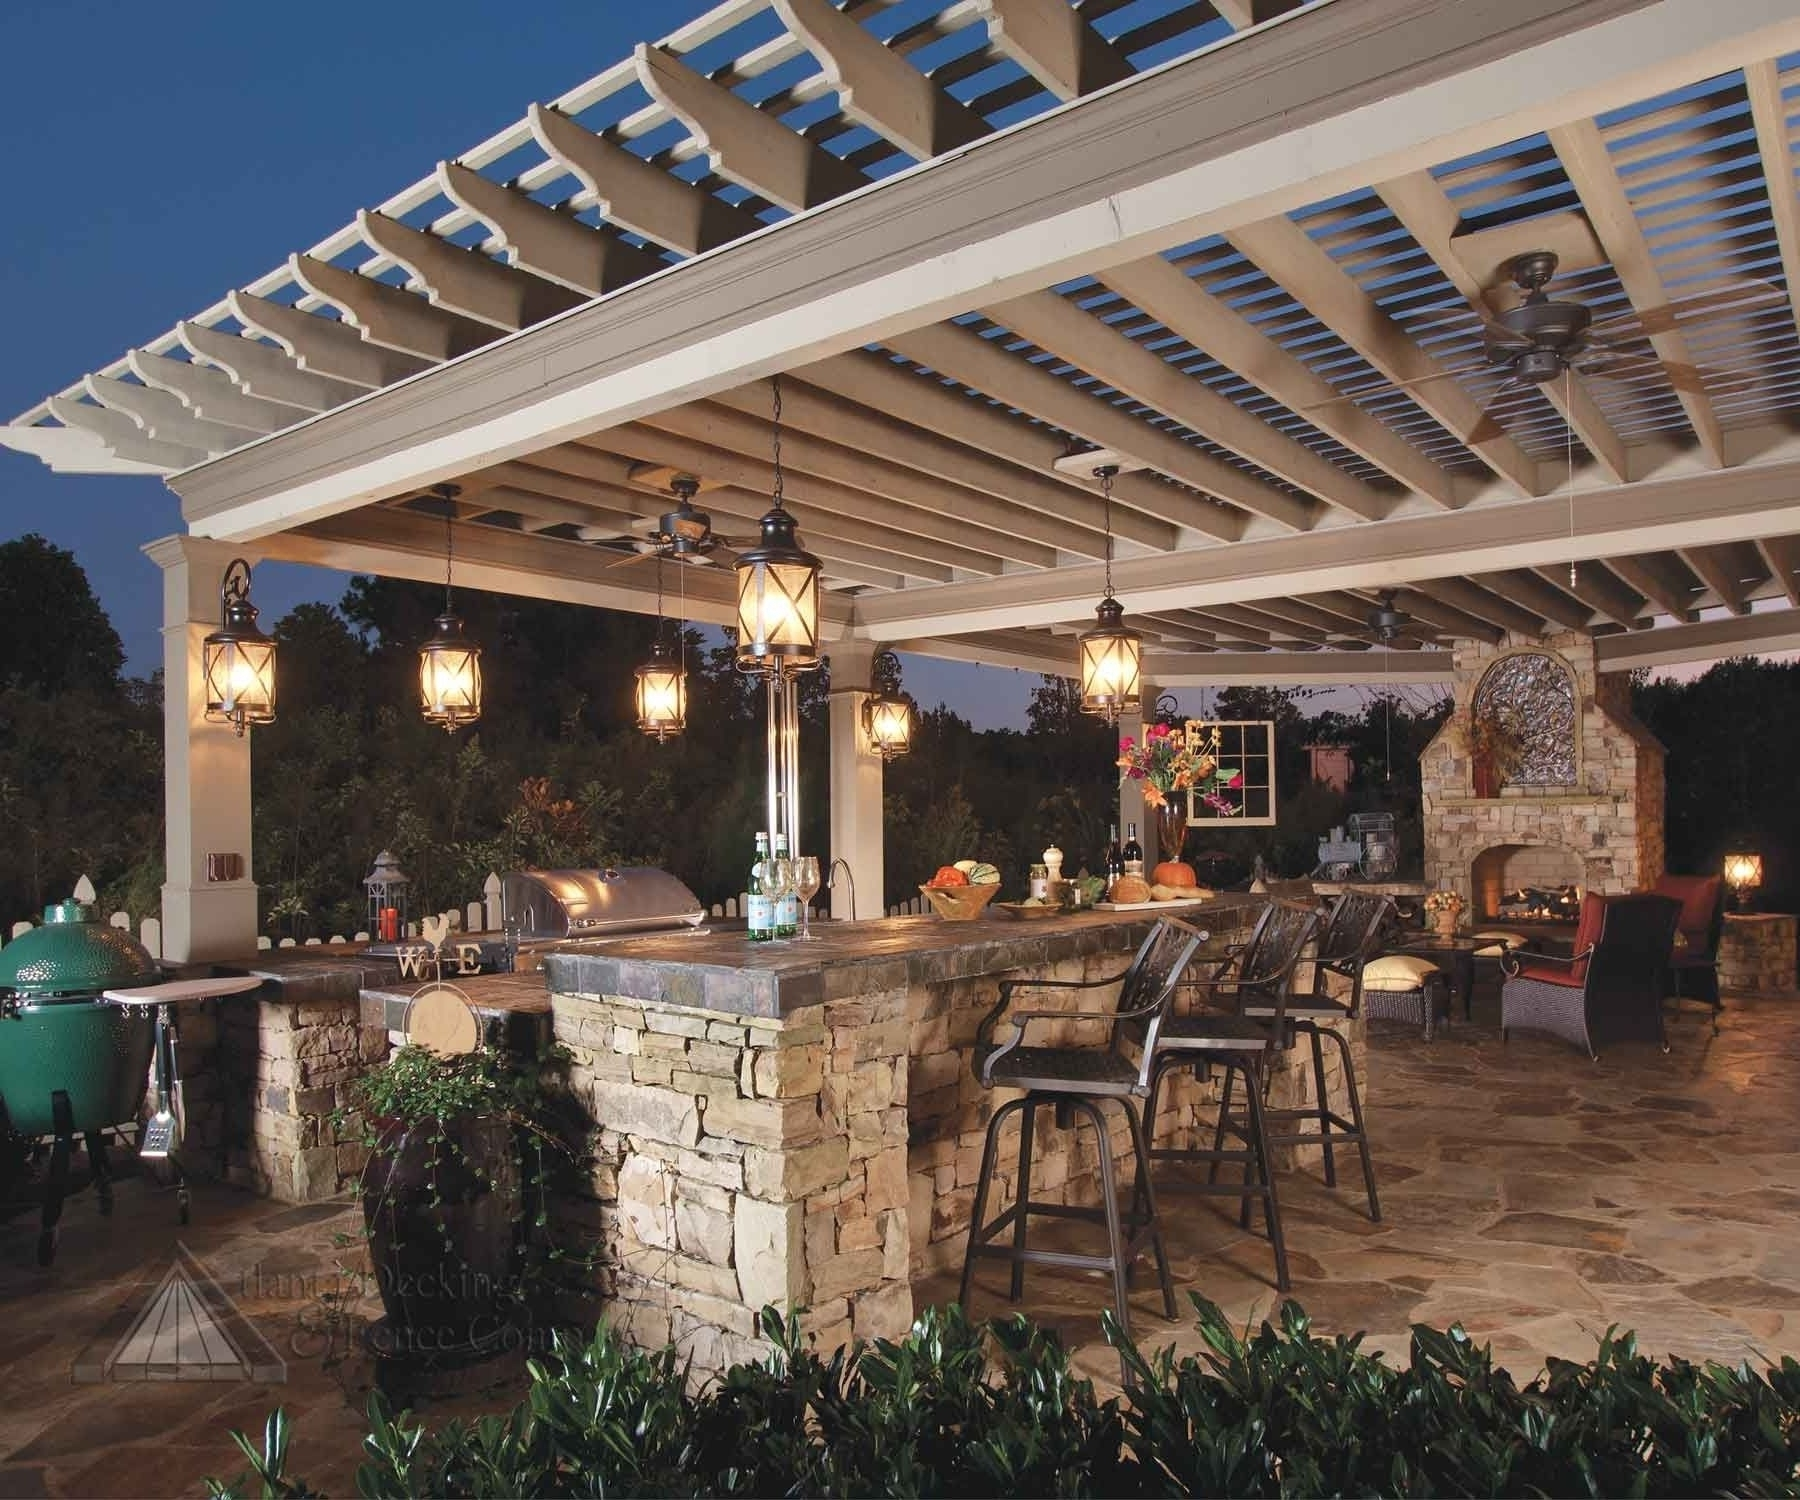 2019 Outdoor Lighting Hanging Fixtures — Bistrodre Porch And Landscape Ideas Inside Hanging Outdoor Lights On House (View 2 of 20)